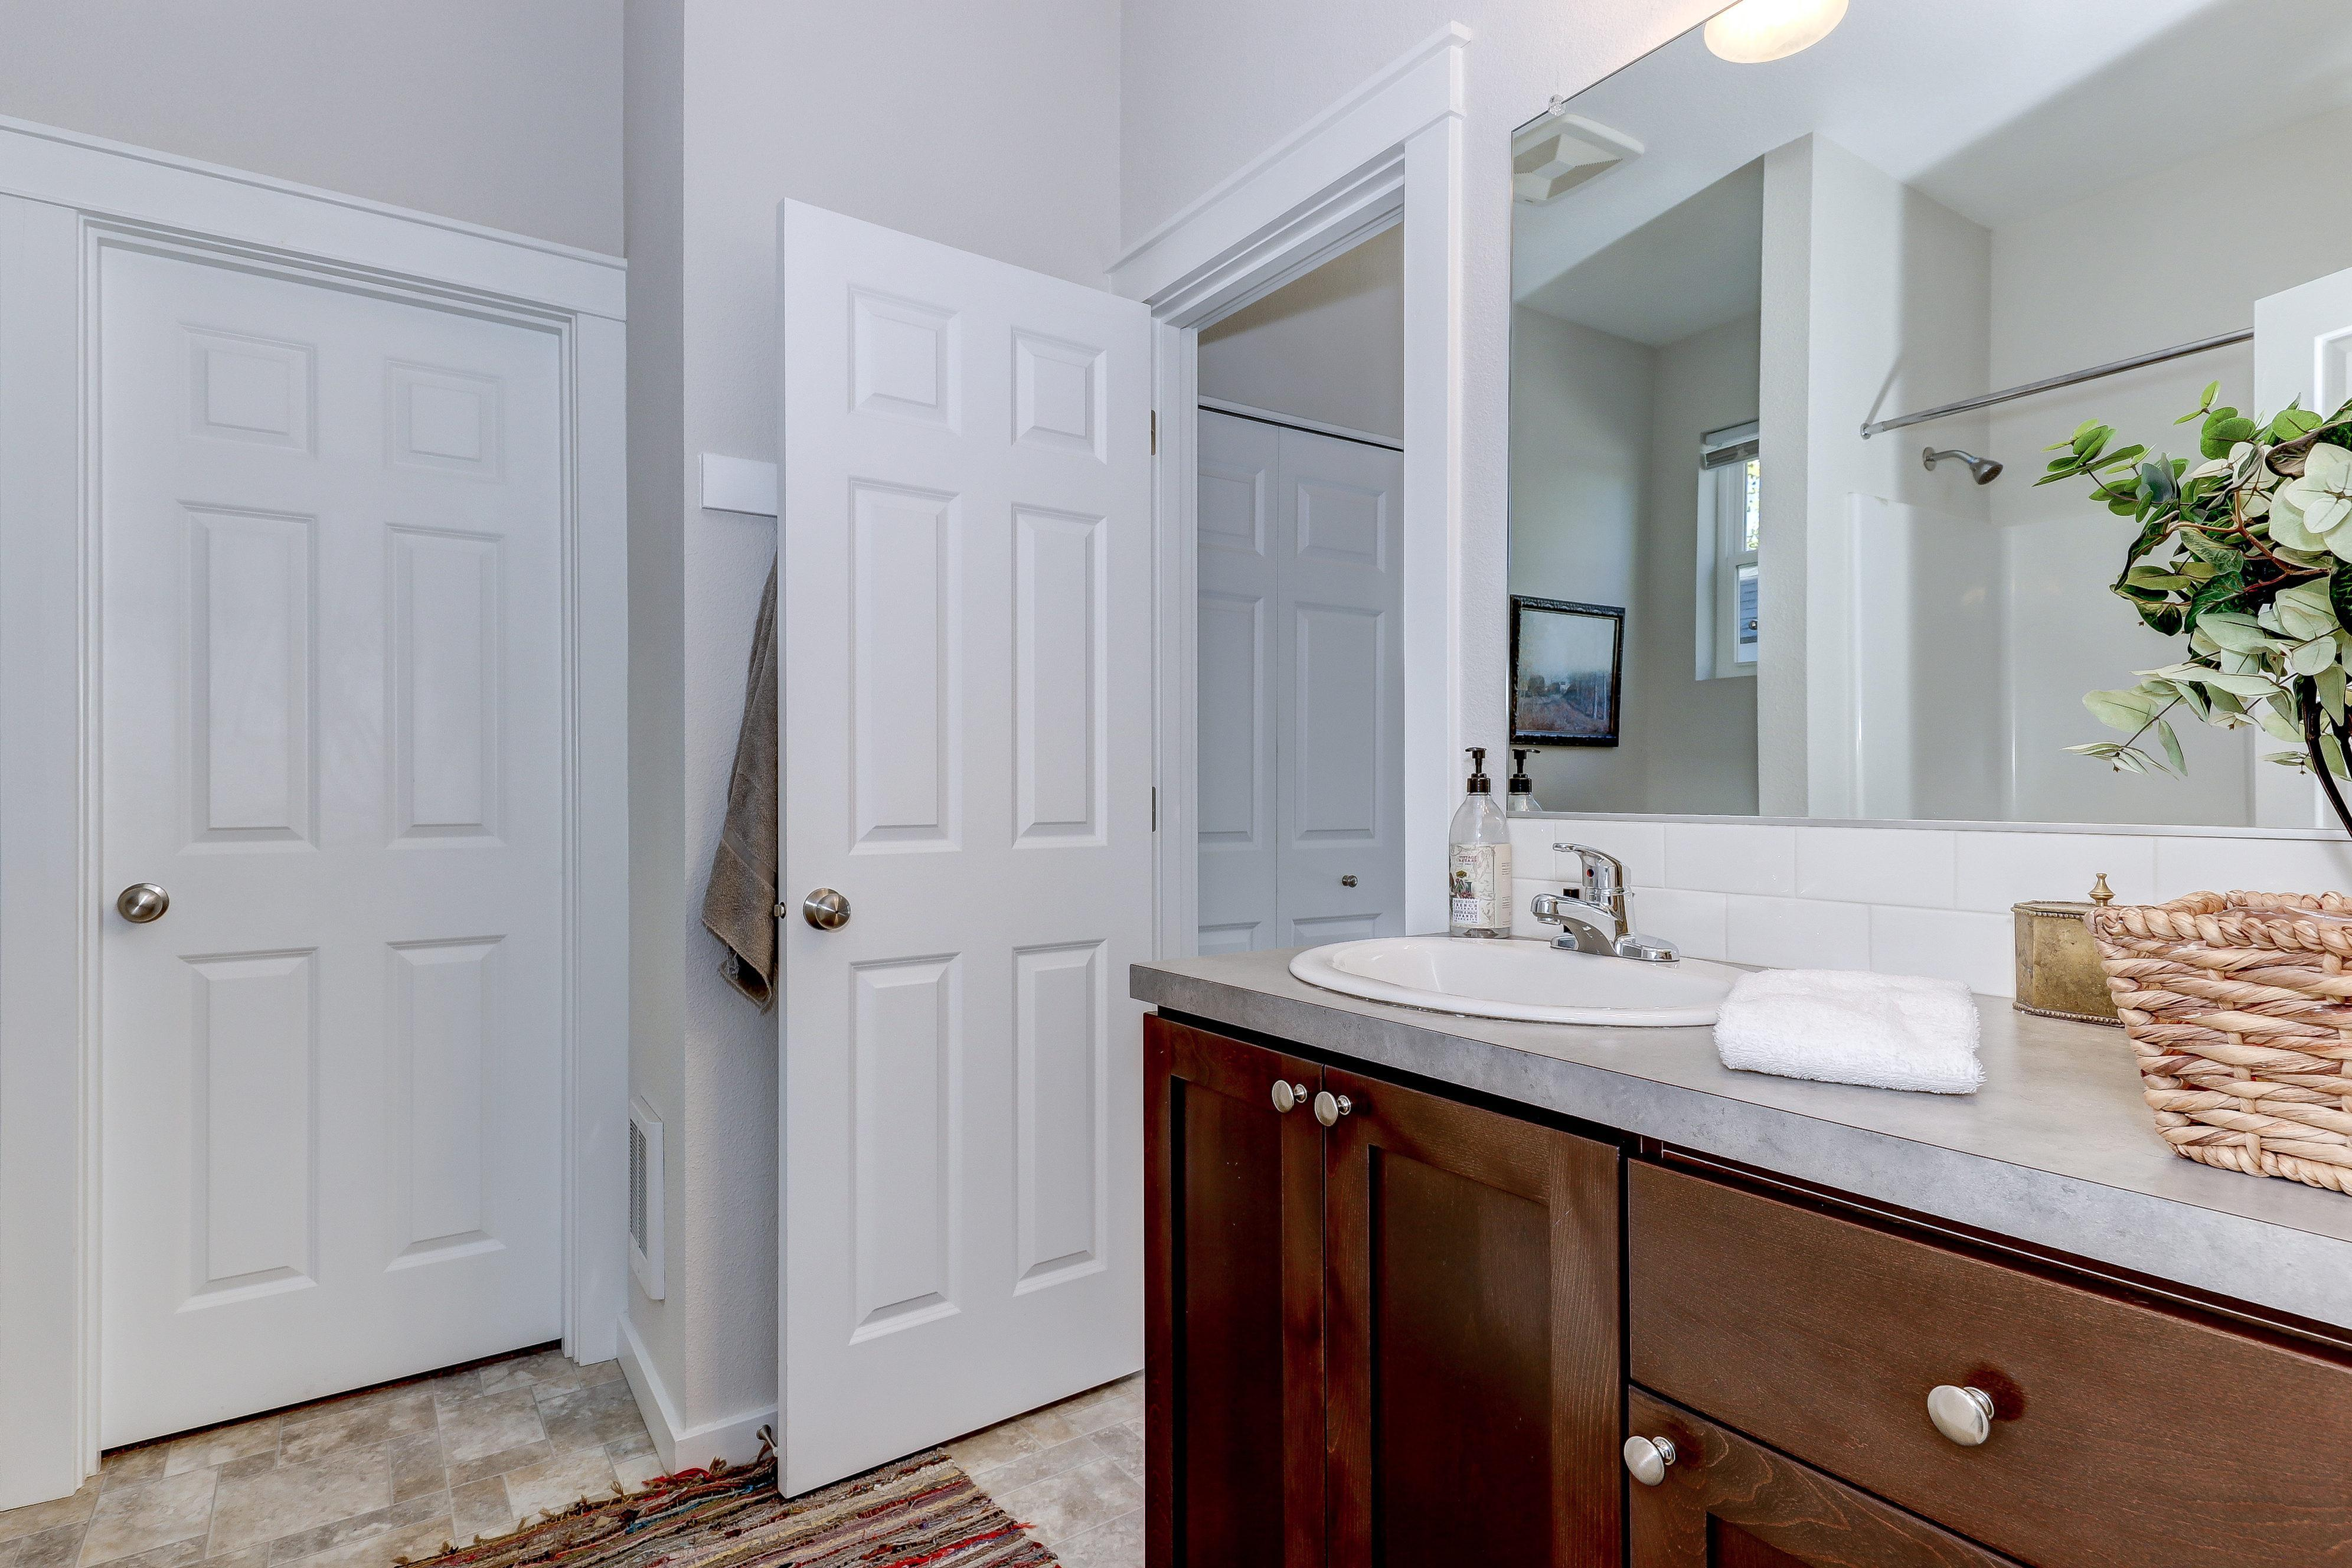 Bathroom featured in The Cottonwood - Build On Your Land By Adair Homes in Bellingham, WA